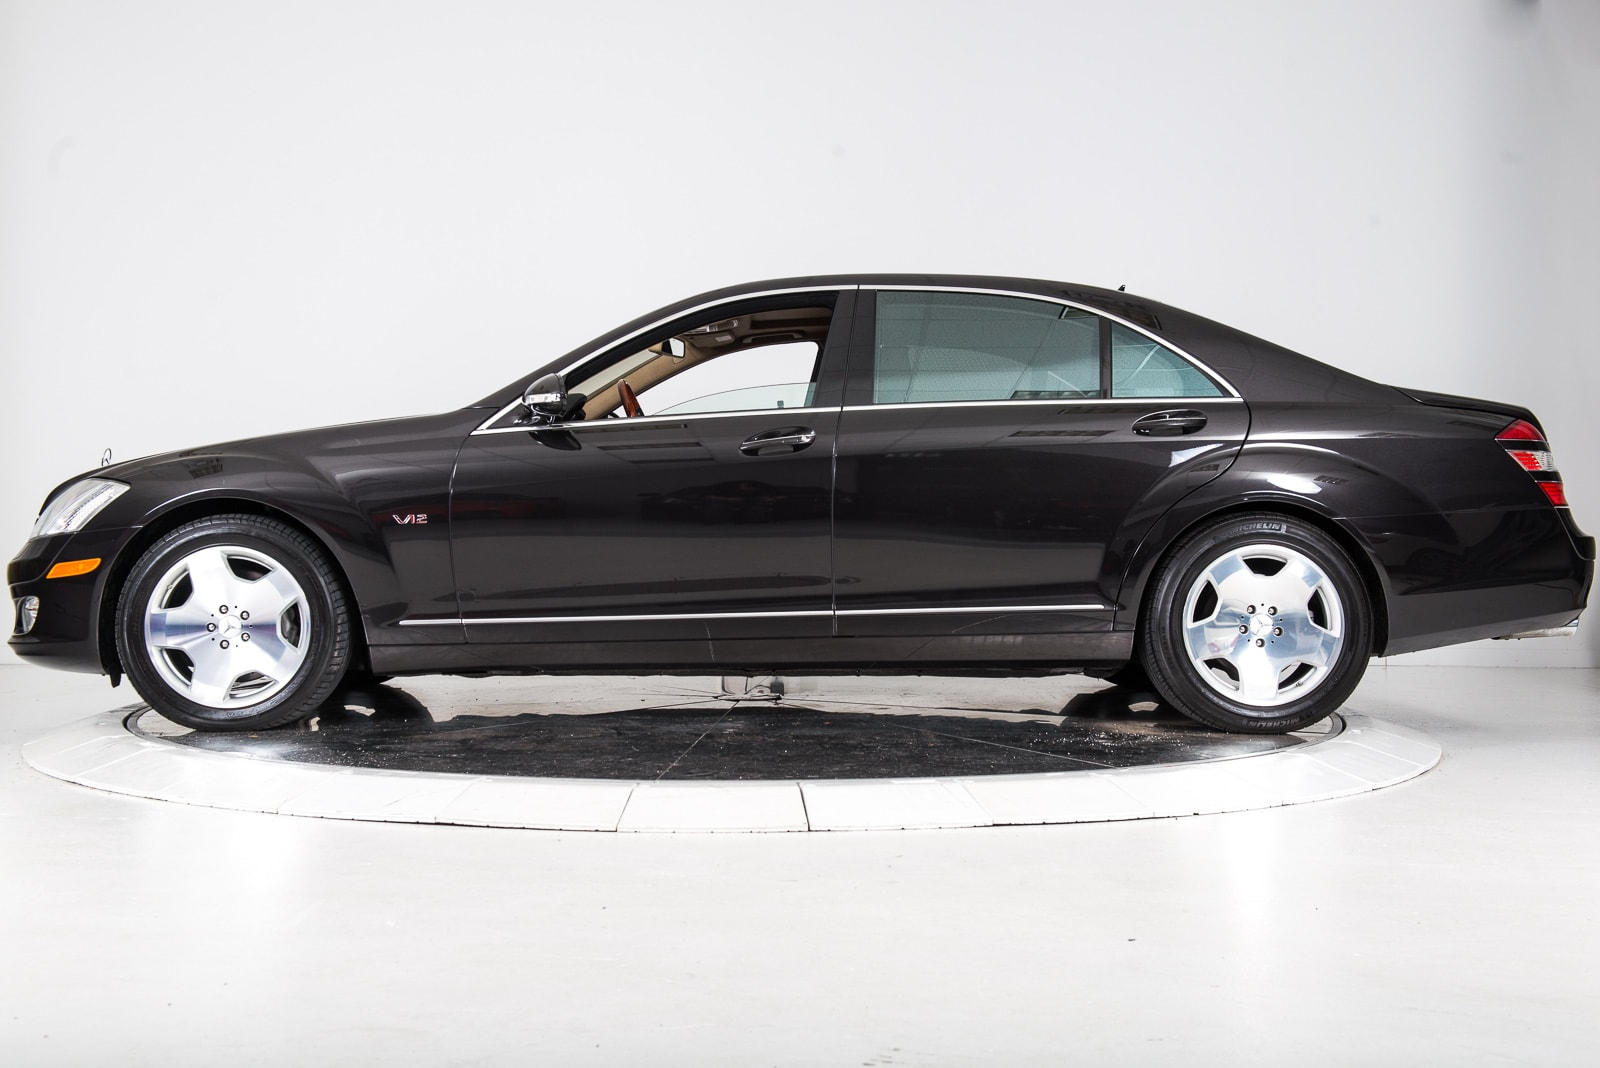 Used 2007 mercedes benz s600 for sale fort lauderdale fl for Used mercedes benz for sale in florida